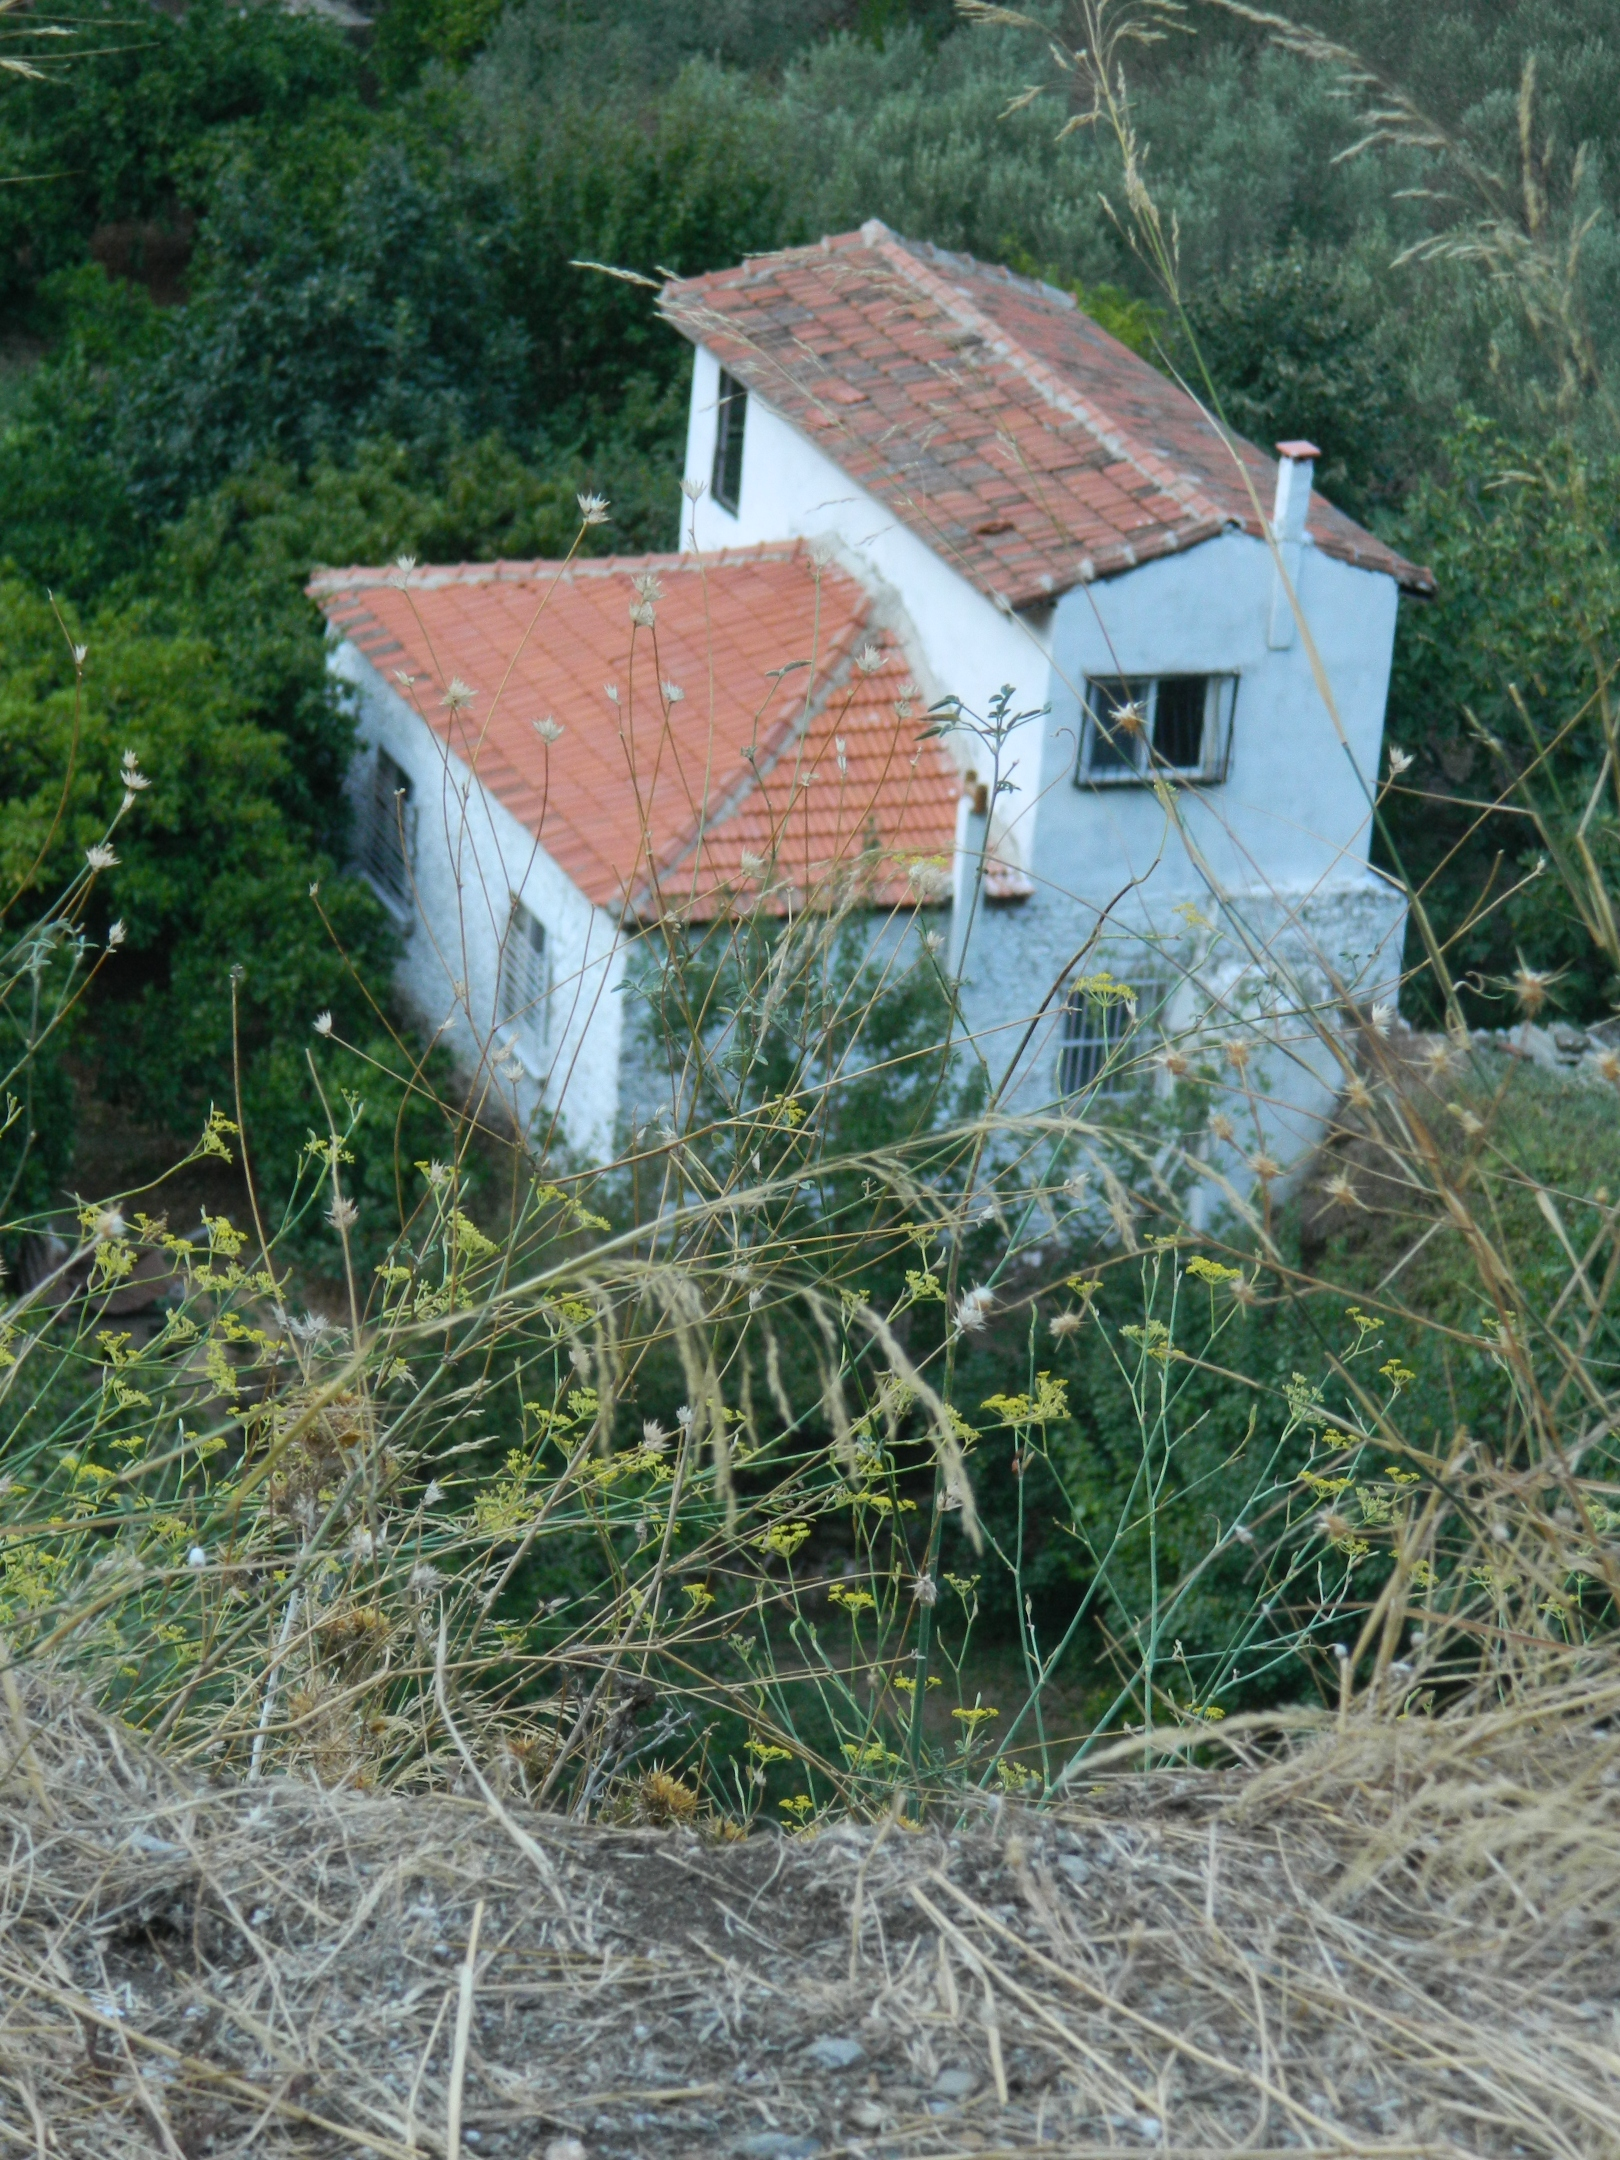 Mountain House, Abandoned, Hill, Home, House, HQ Photo